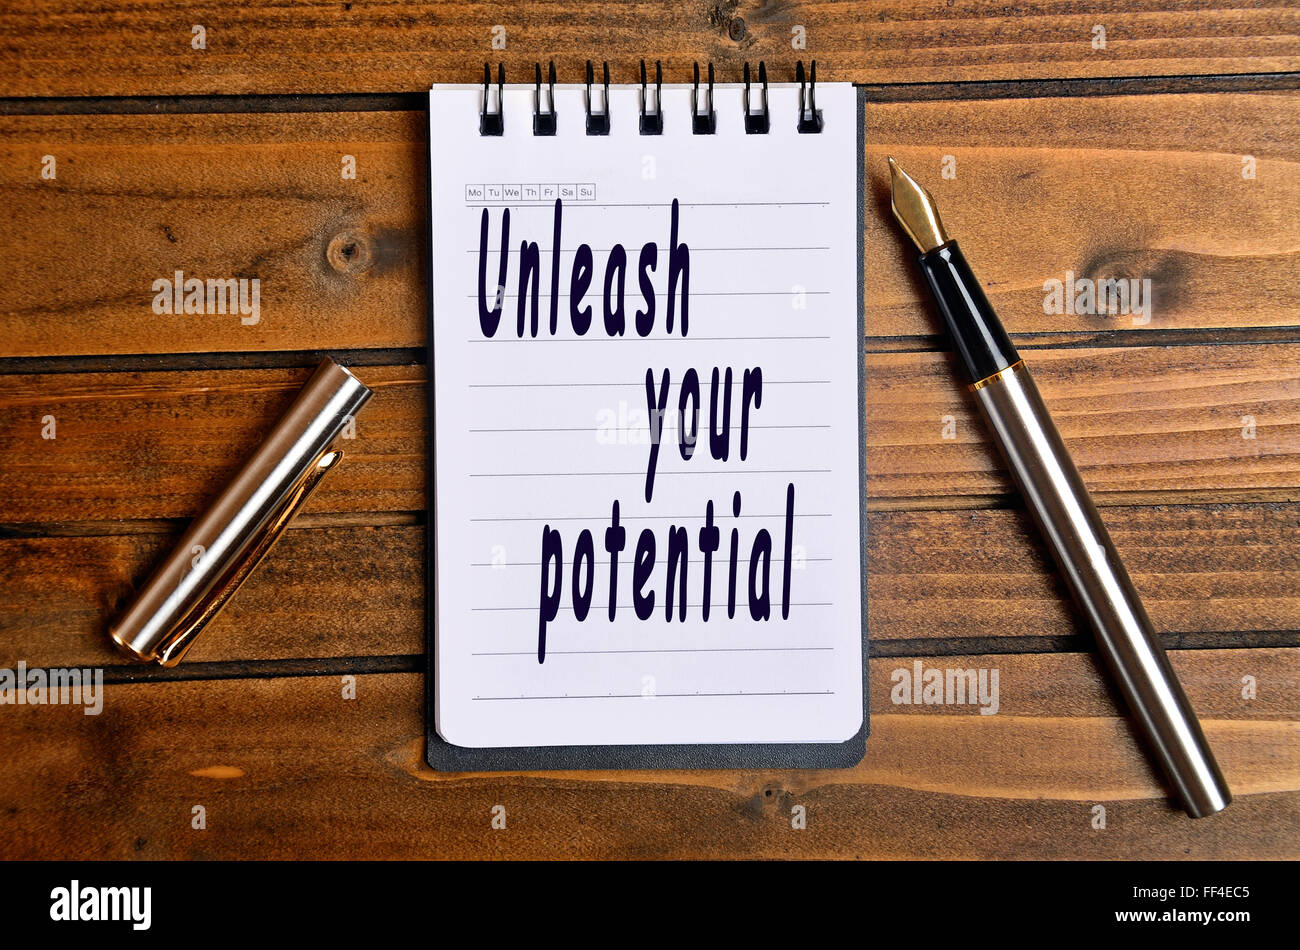 Unleash your potential text written on notebook - Stock Image